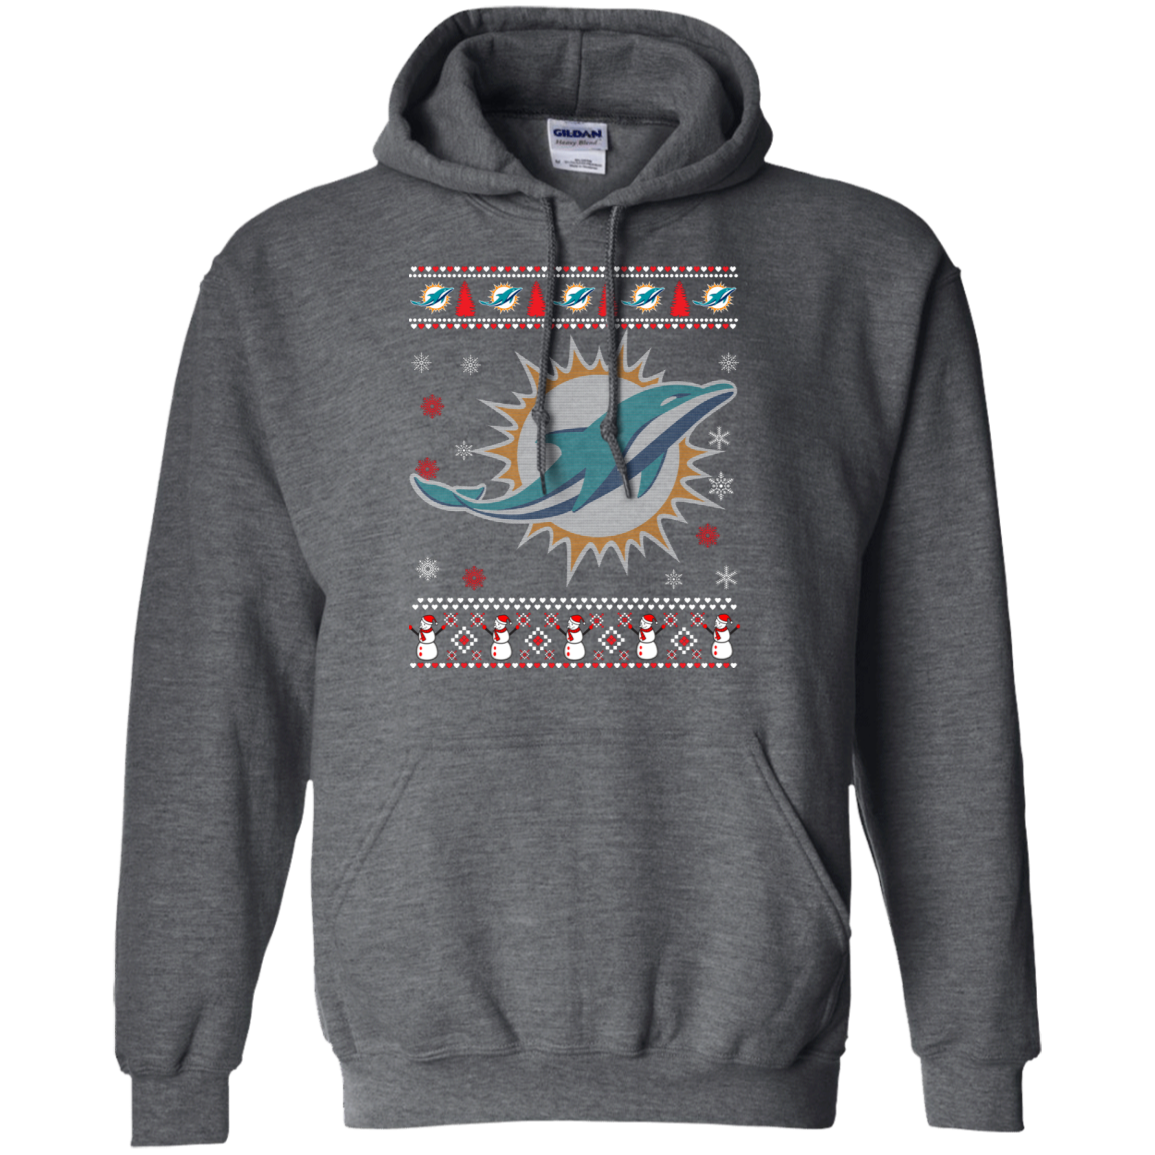 Check Out This Awesome Miami Dolphins Christmas Ugly Christmas